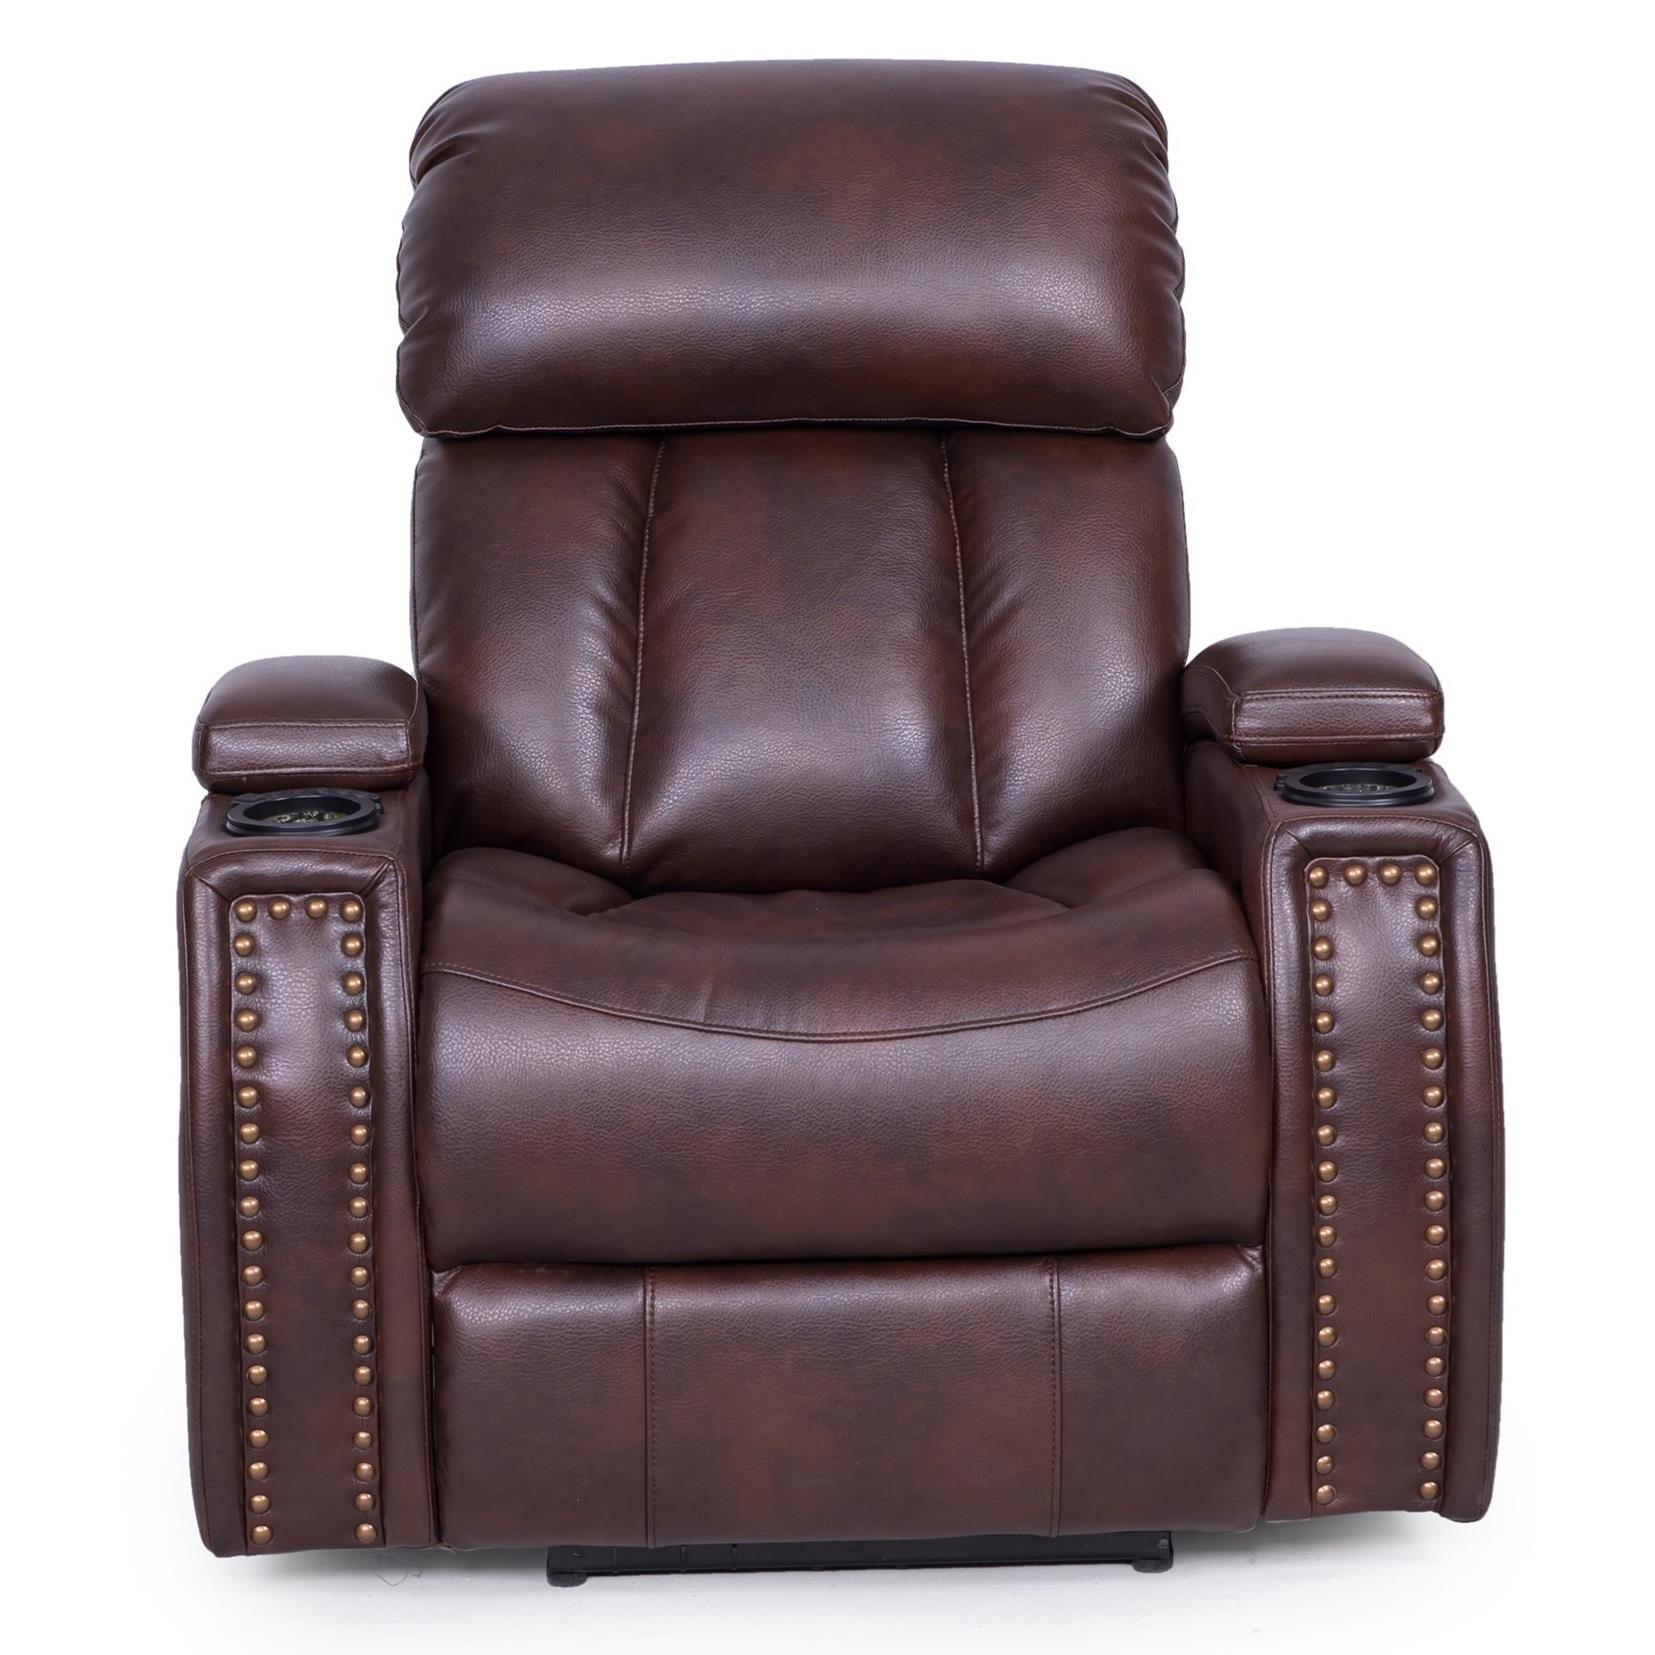 Synergy Home Furnishings 399 Power Recliner - Item Number: 399-85pwr 2270-87